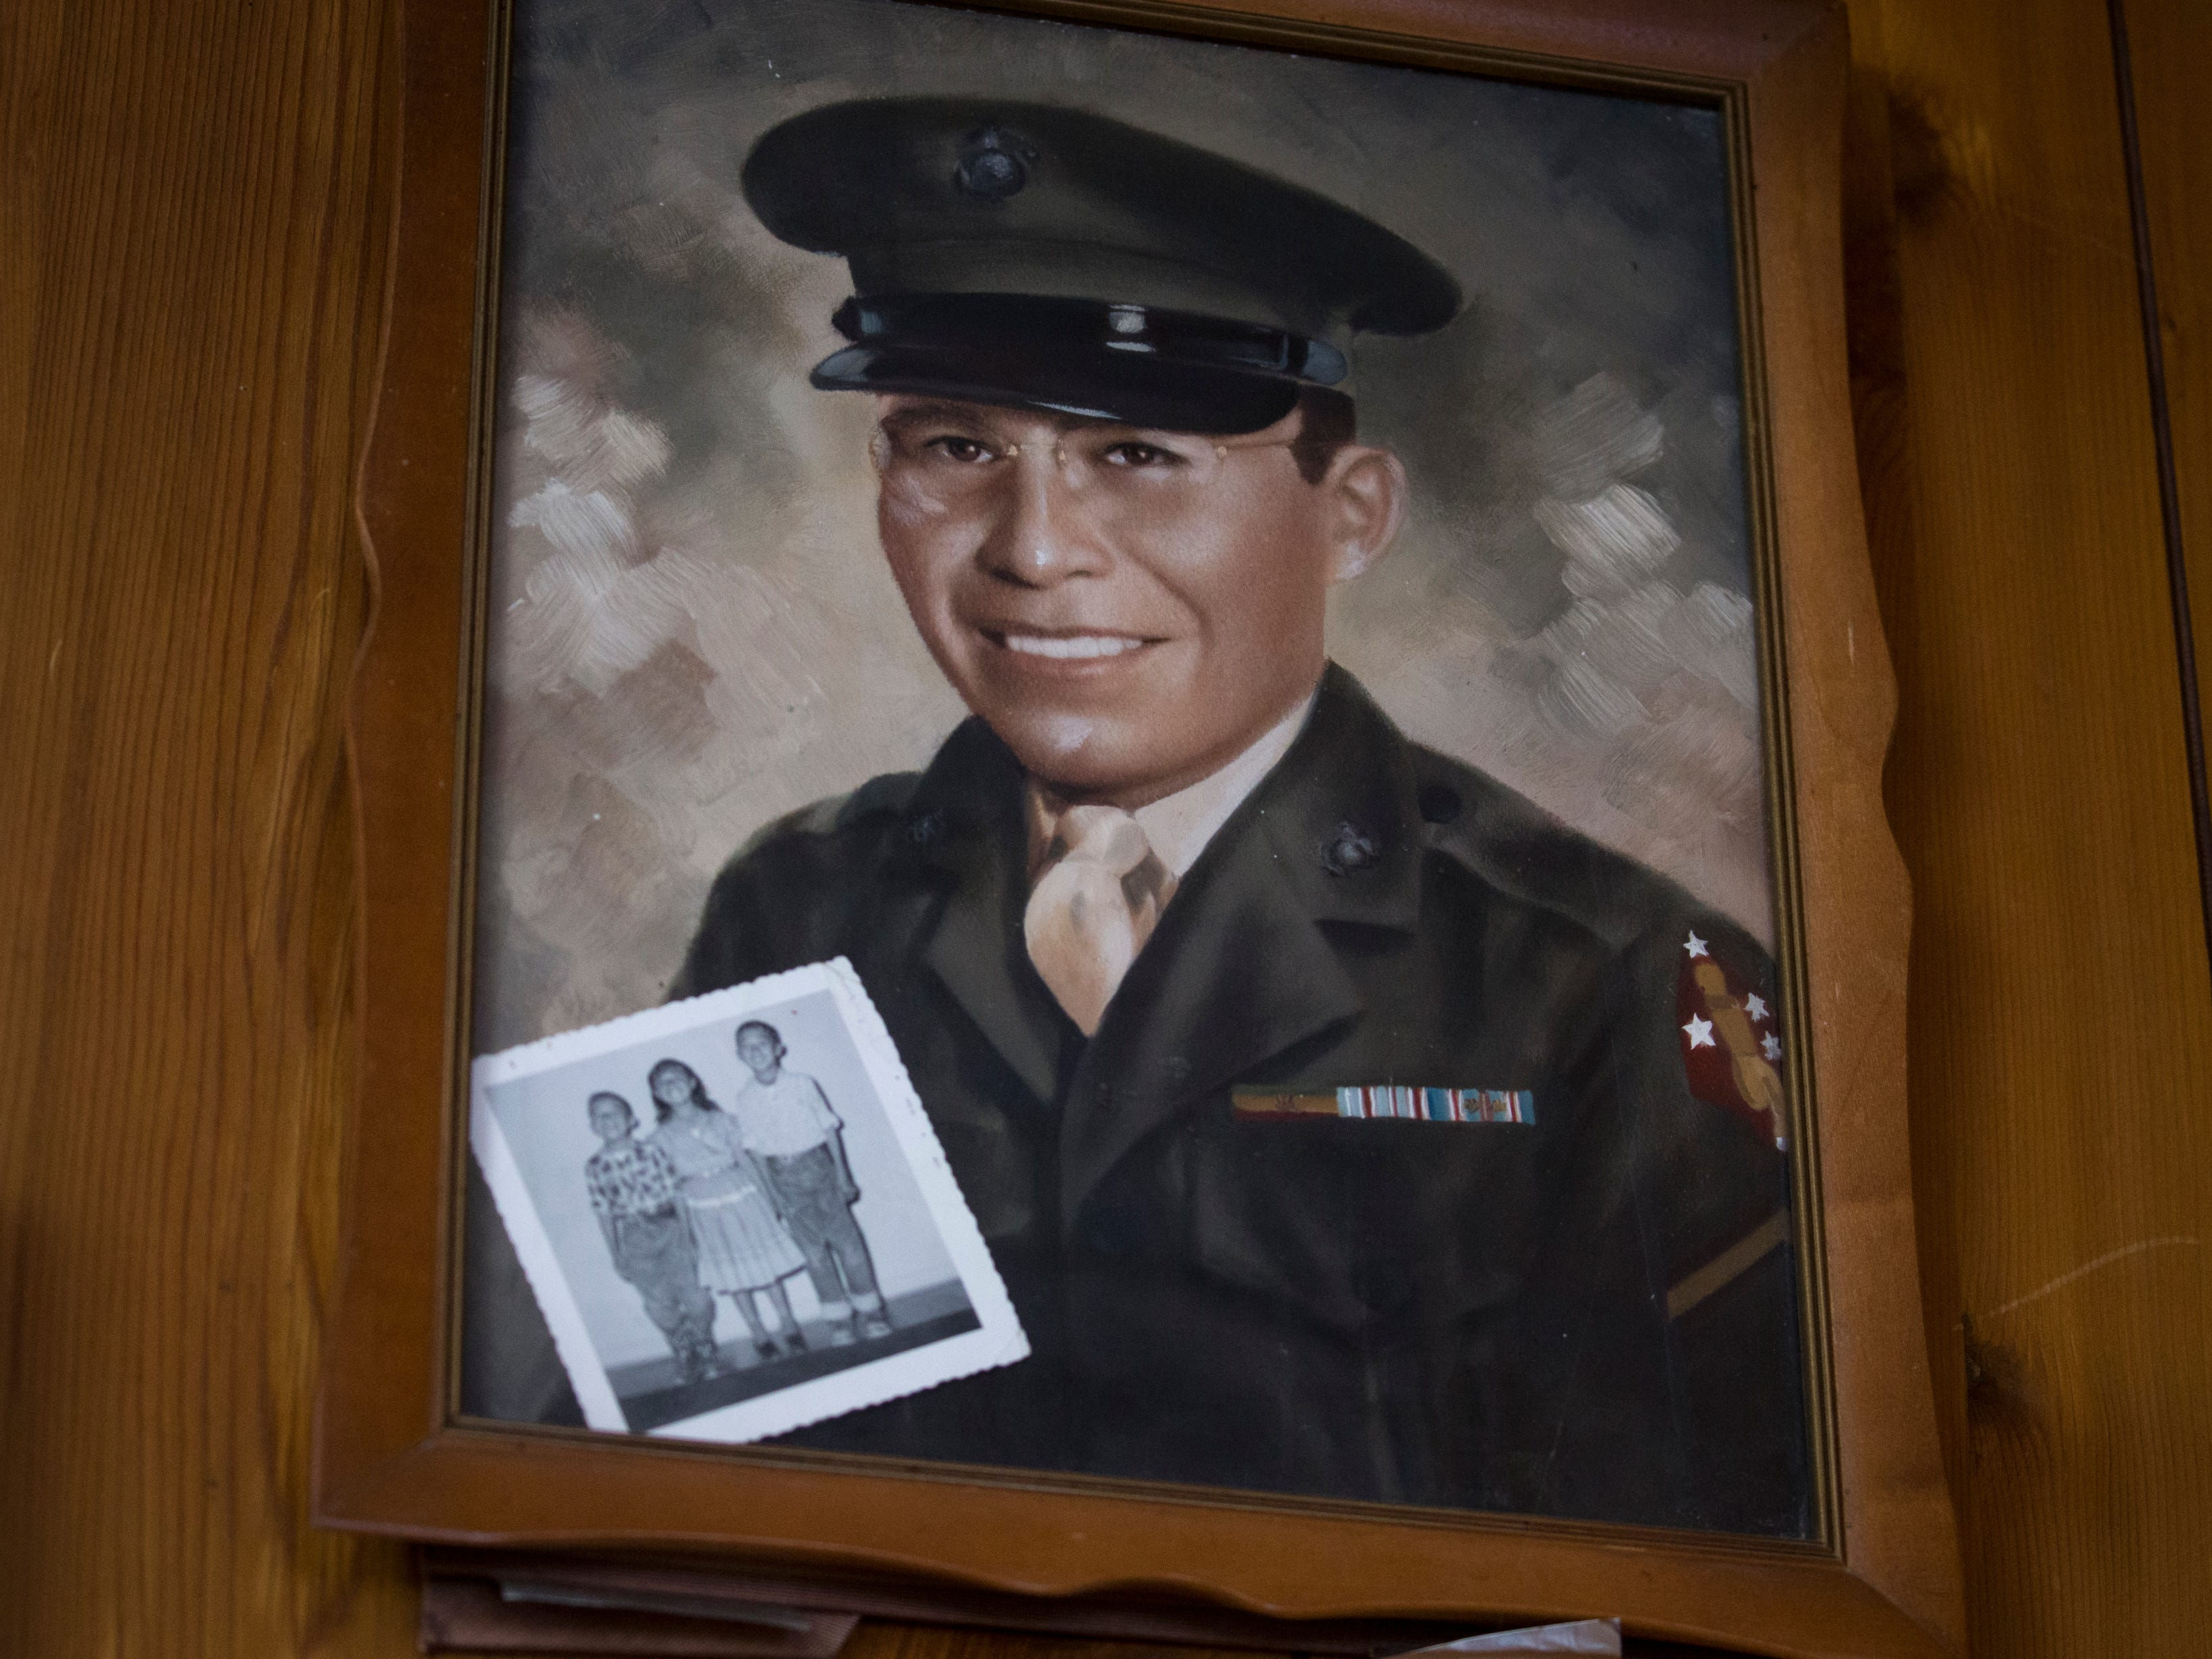 A photo of Navajo Code Talker Fleming Begaye Sr. and his children (black and white) hangs on the wall in the Begaye family home on Chinle, Ariz.